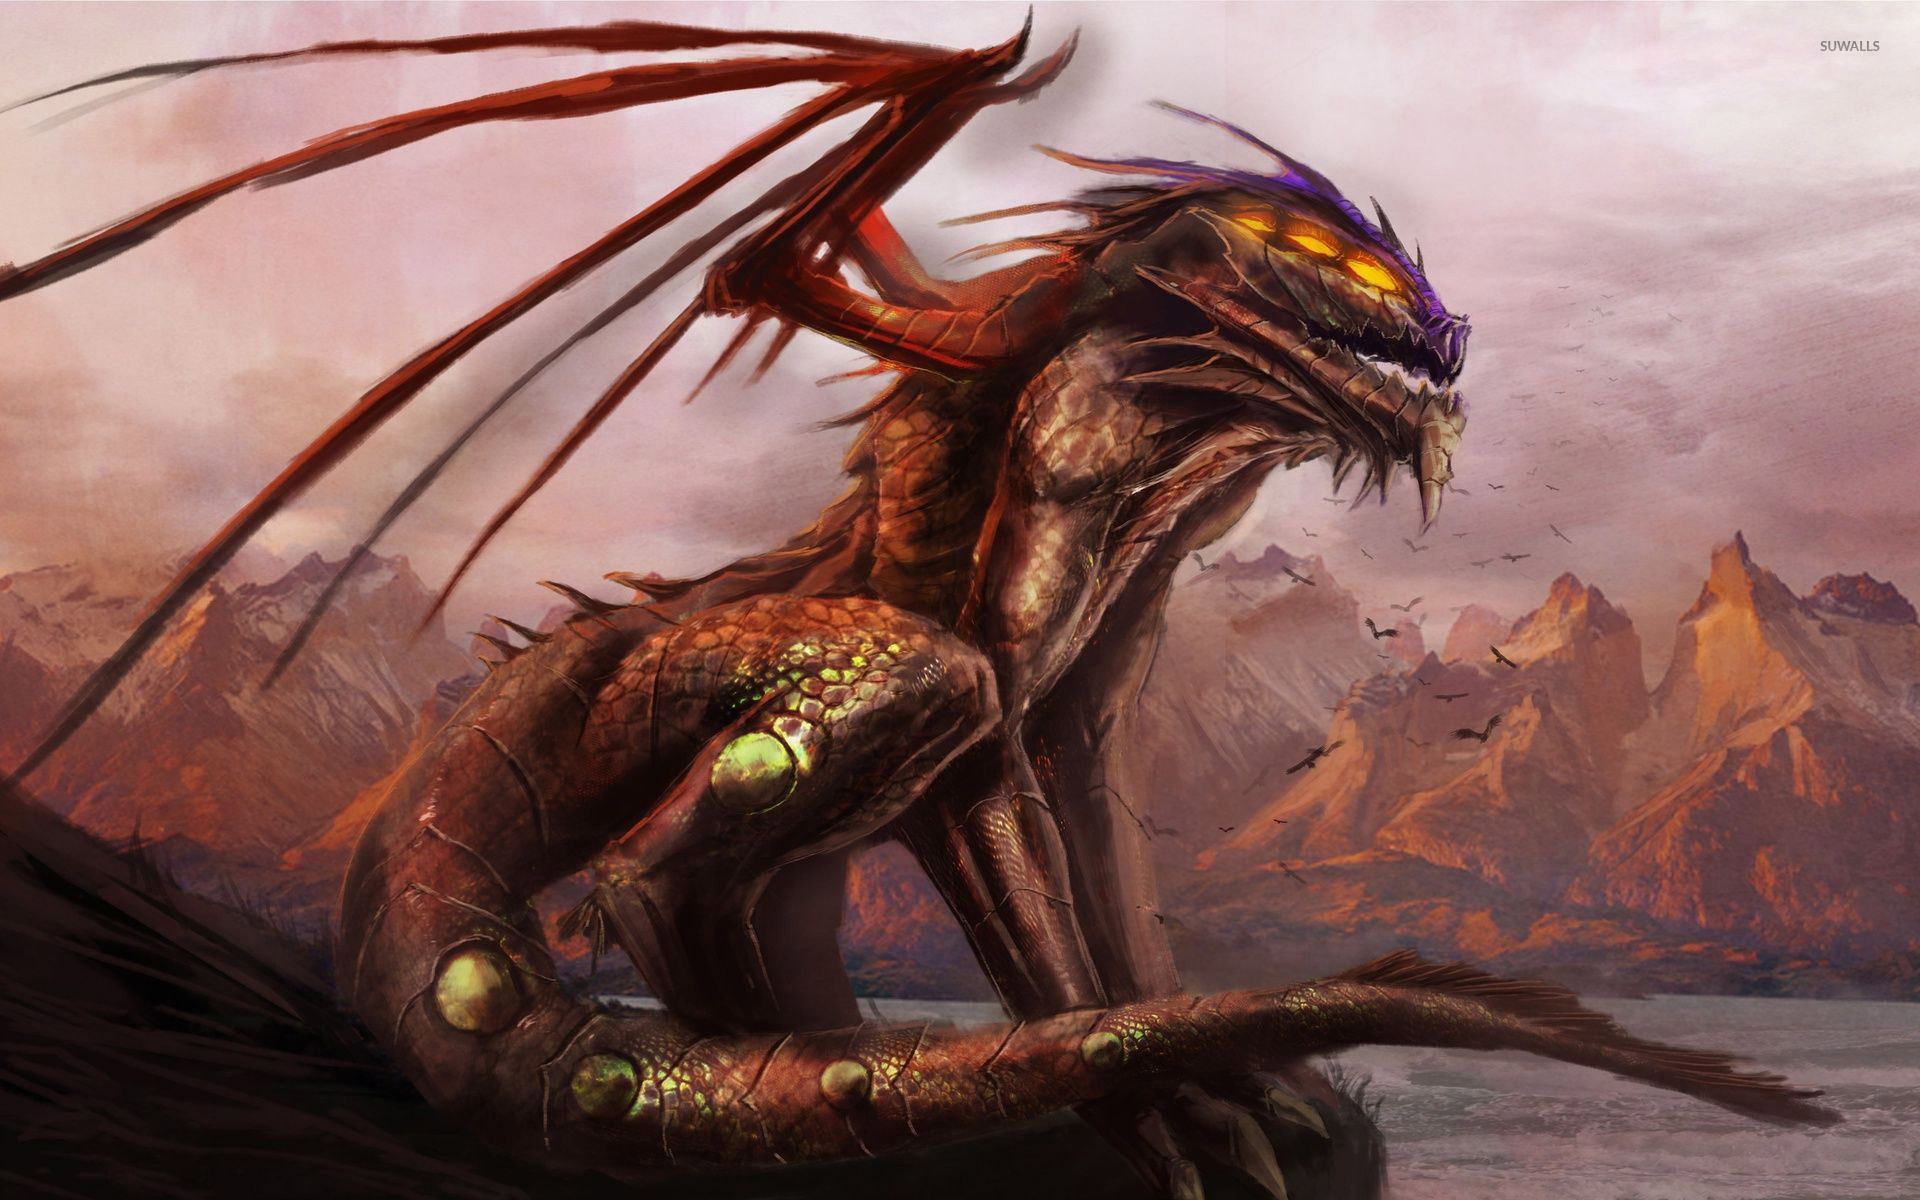 Cute World Map Desktop Wallpaper Scary Dragon On The Cliff Wallpaper Fantasy Wallpapers